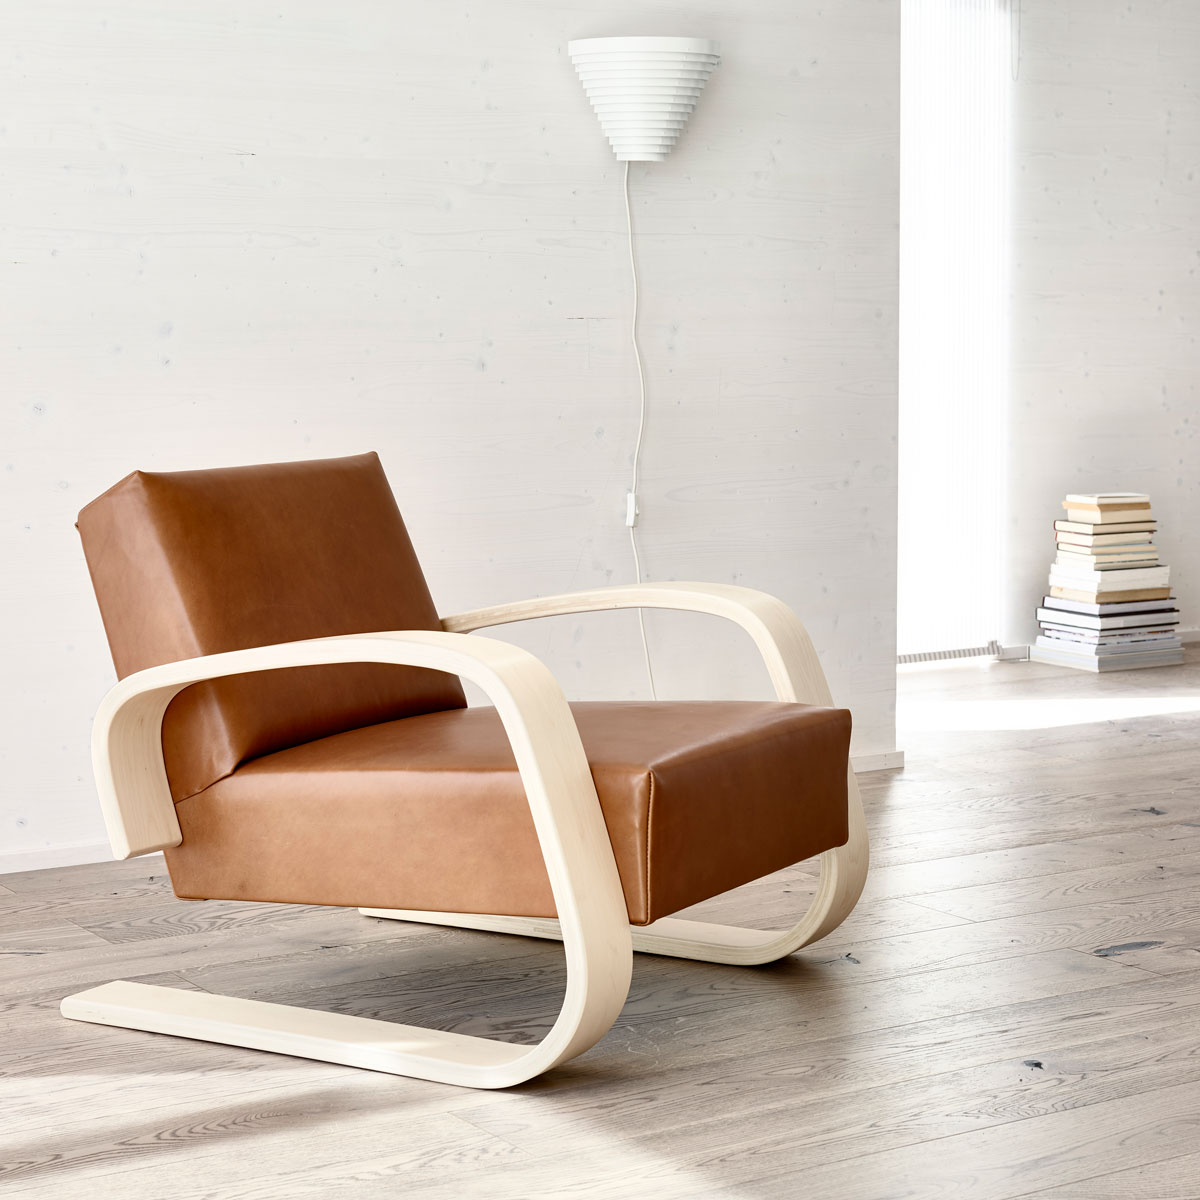 Basic Chair Design Artek Alvar Aalto 400 Lounge Chair Basic